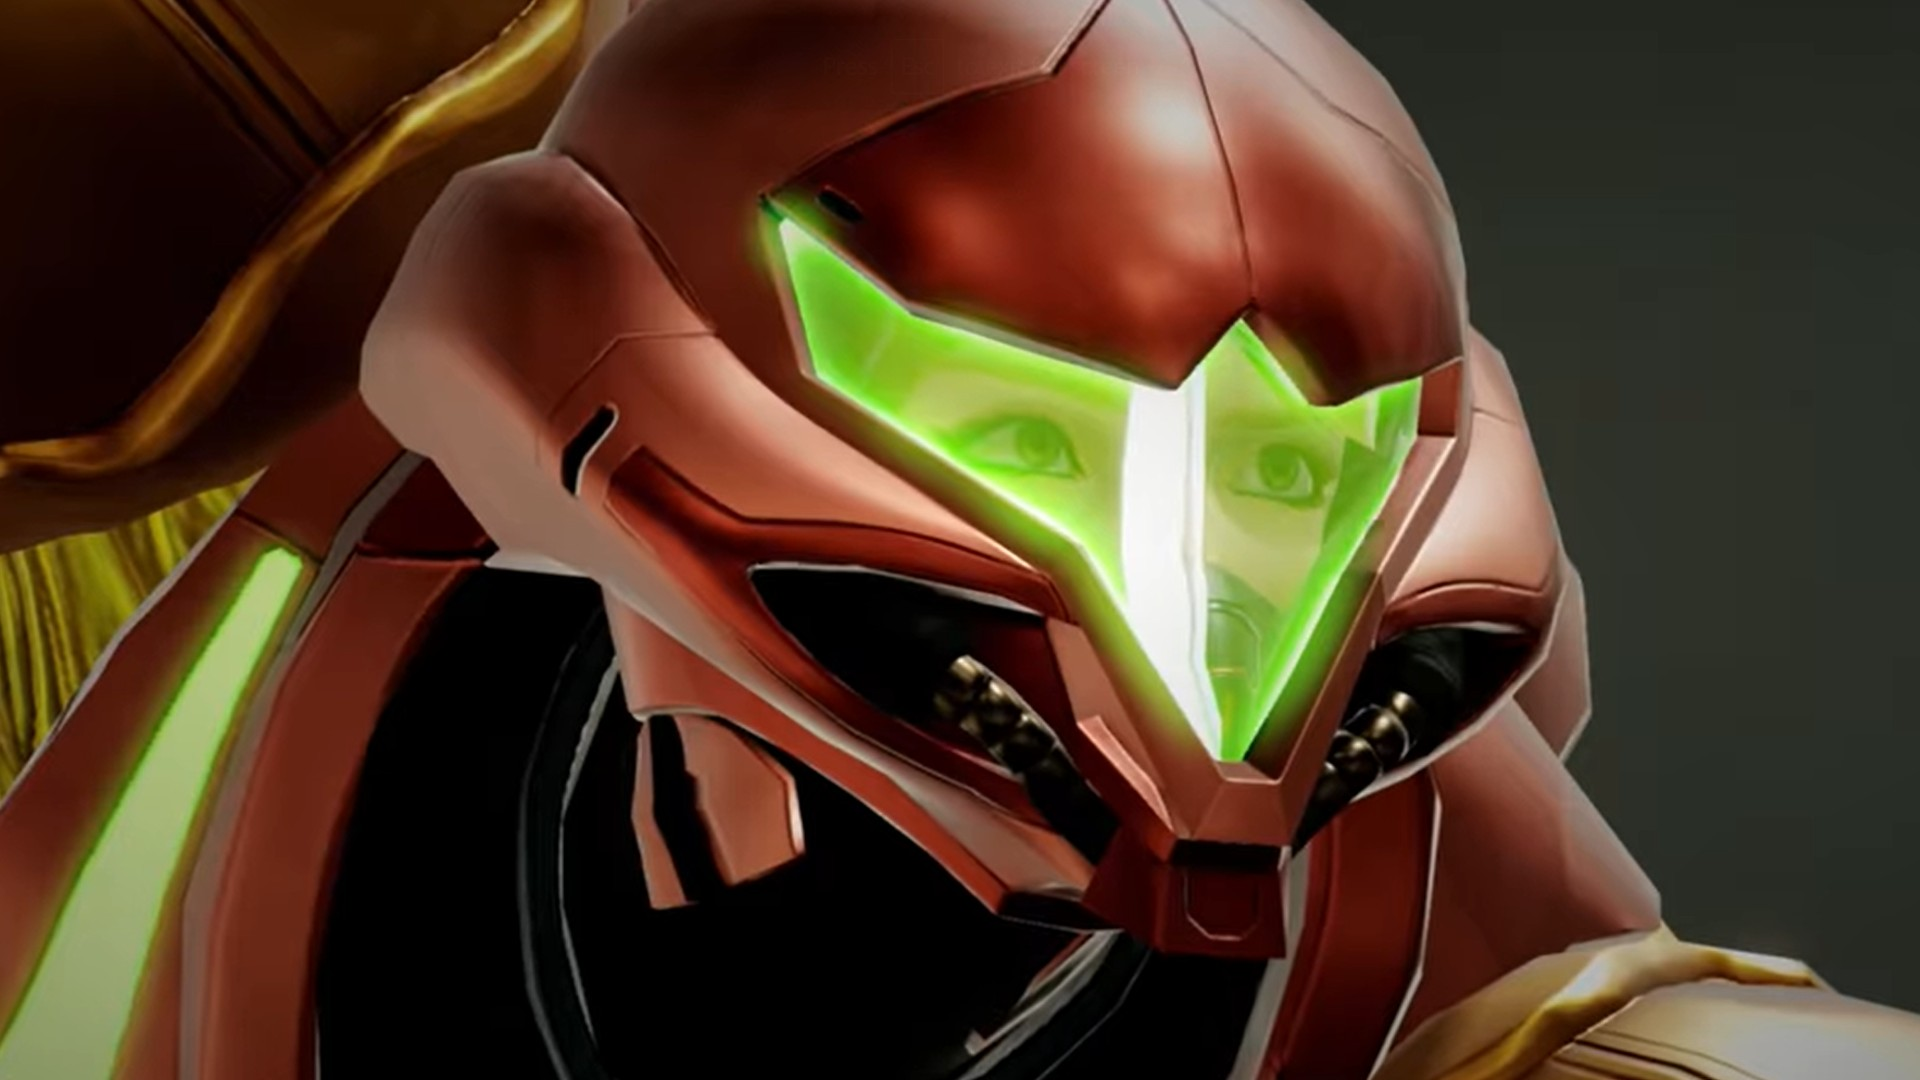 New Metroid Dread trailer shows more of what Samus will face on planet ZDR  | GamesRadar+